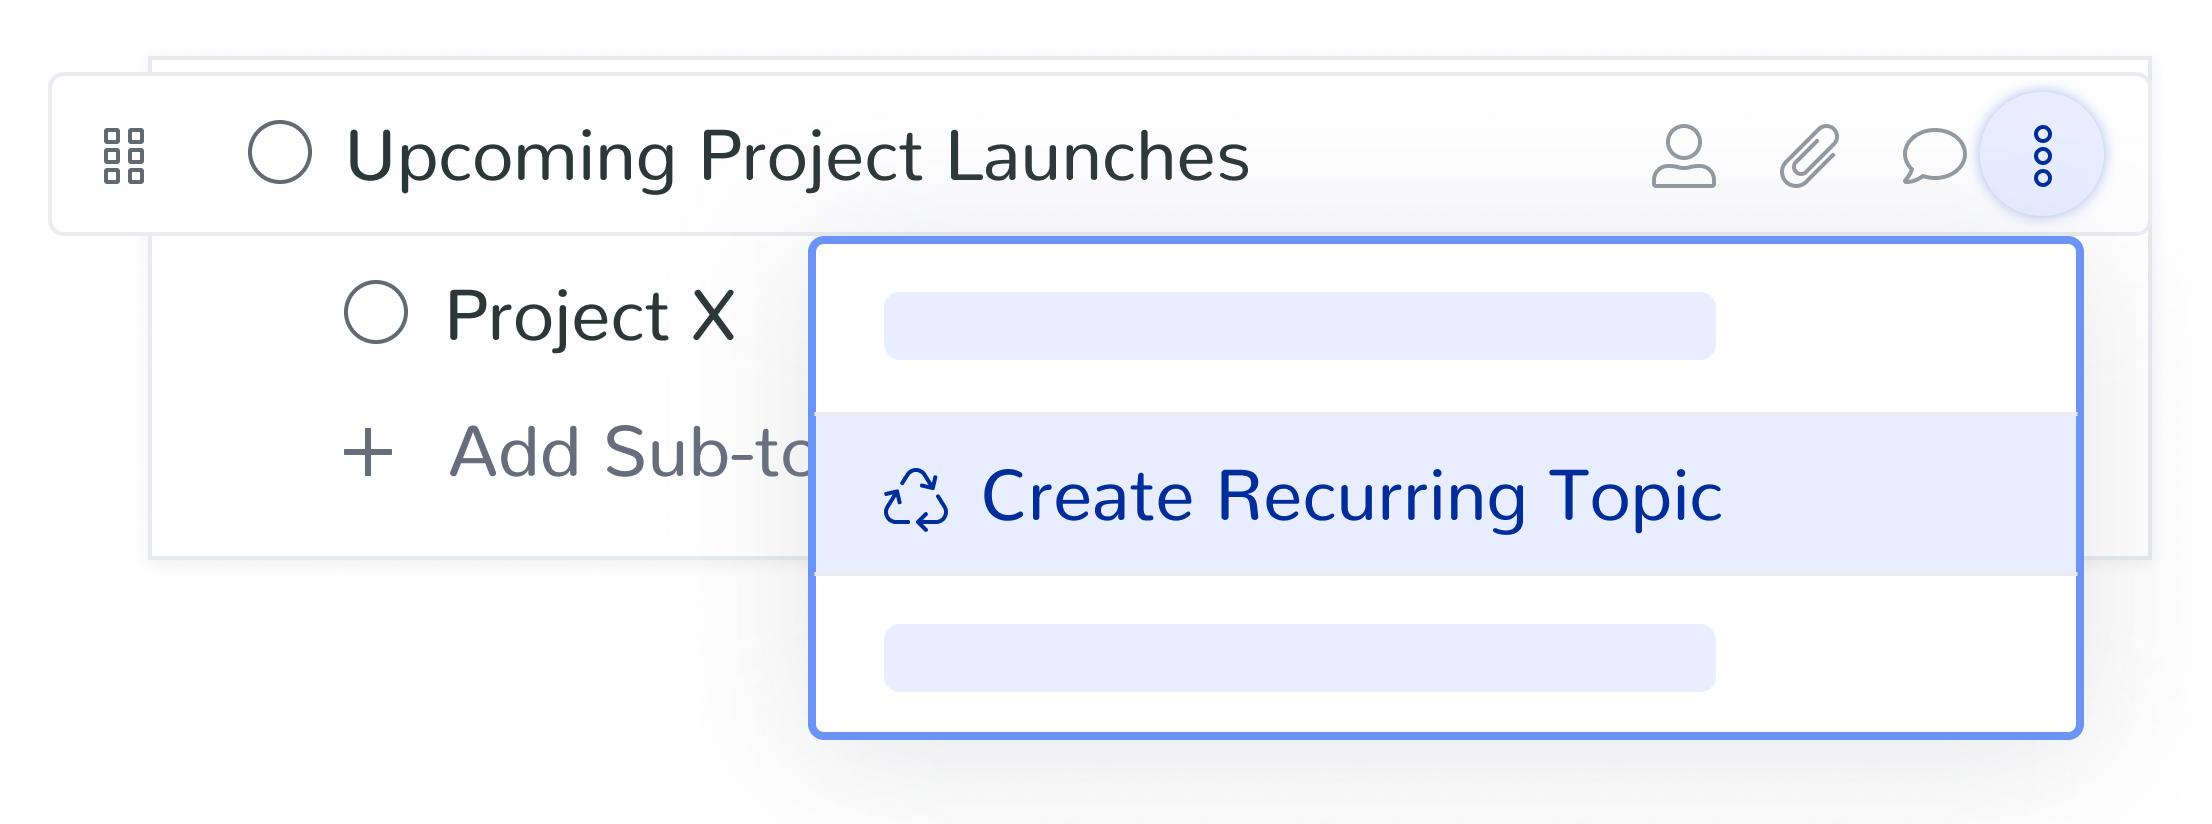 Make discussion topics recurring so you can check in on progress or changes of projects